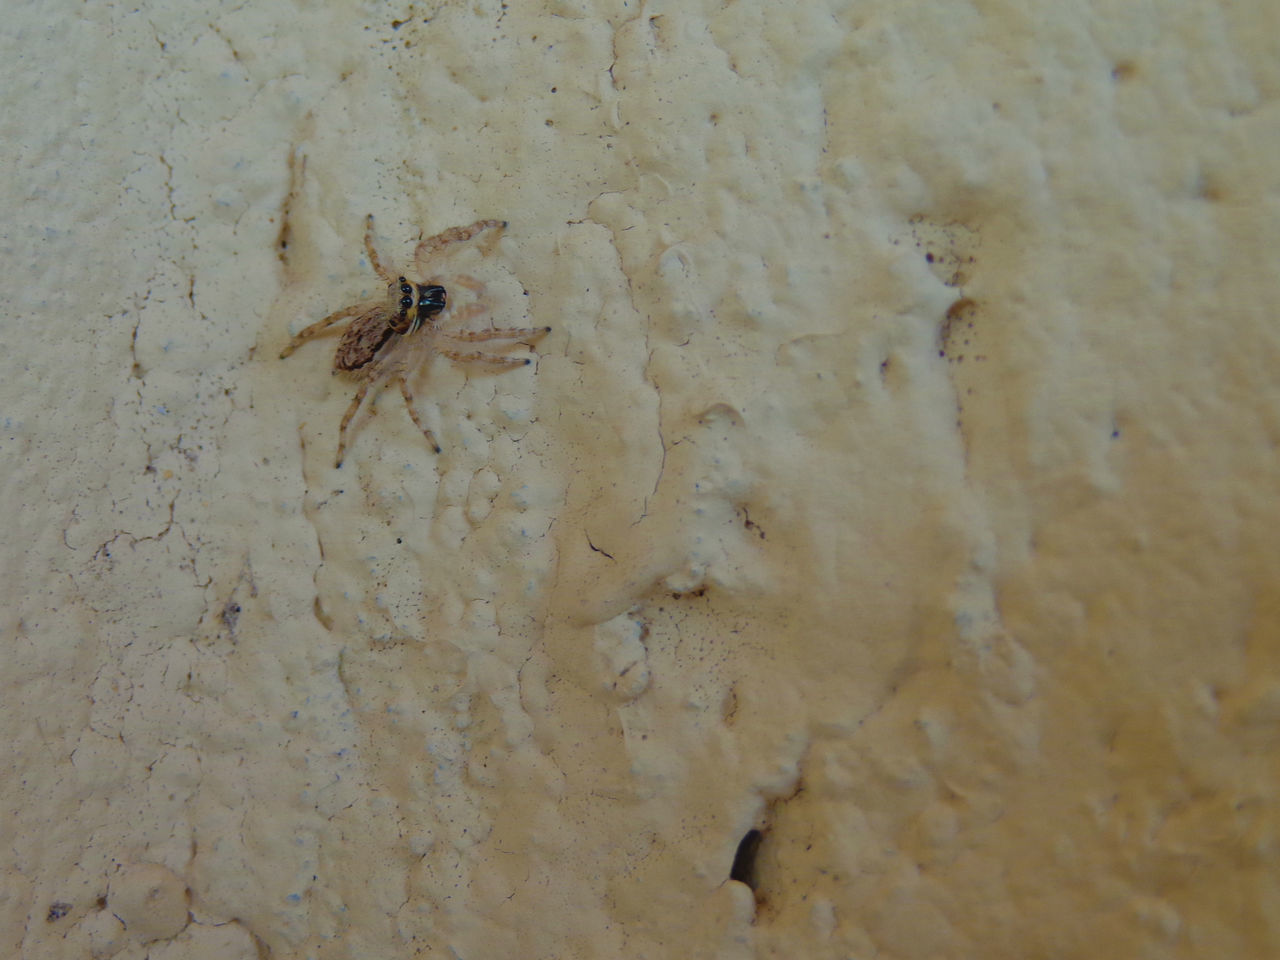 🕷 Animal Themes Animal Wildlife Animals In The Wild Close-up Day High Angle View Insect Nature One Animal Outdoors Spider